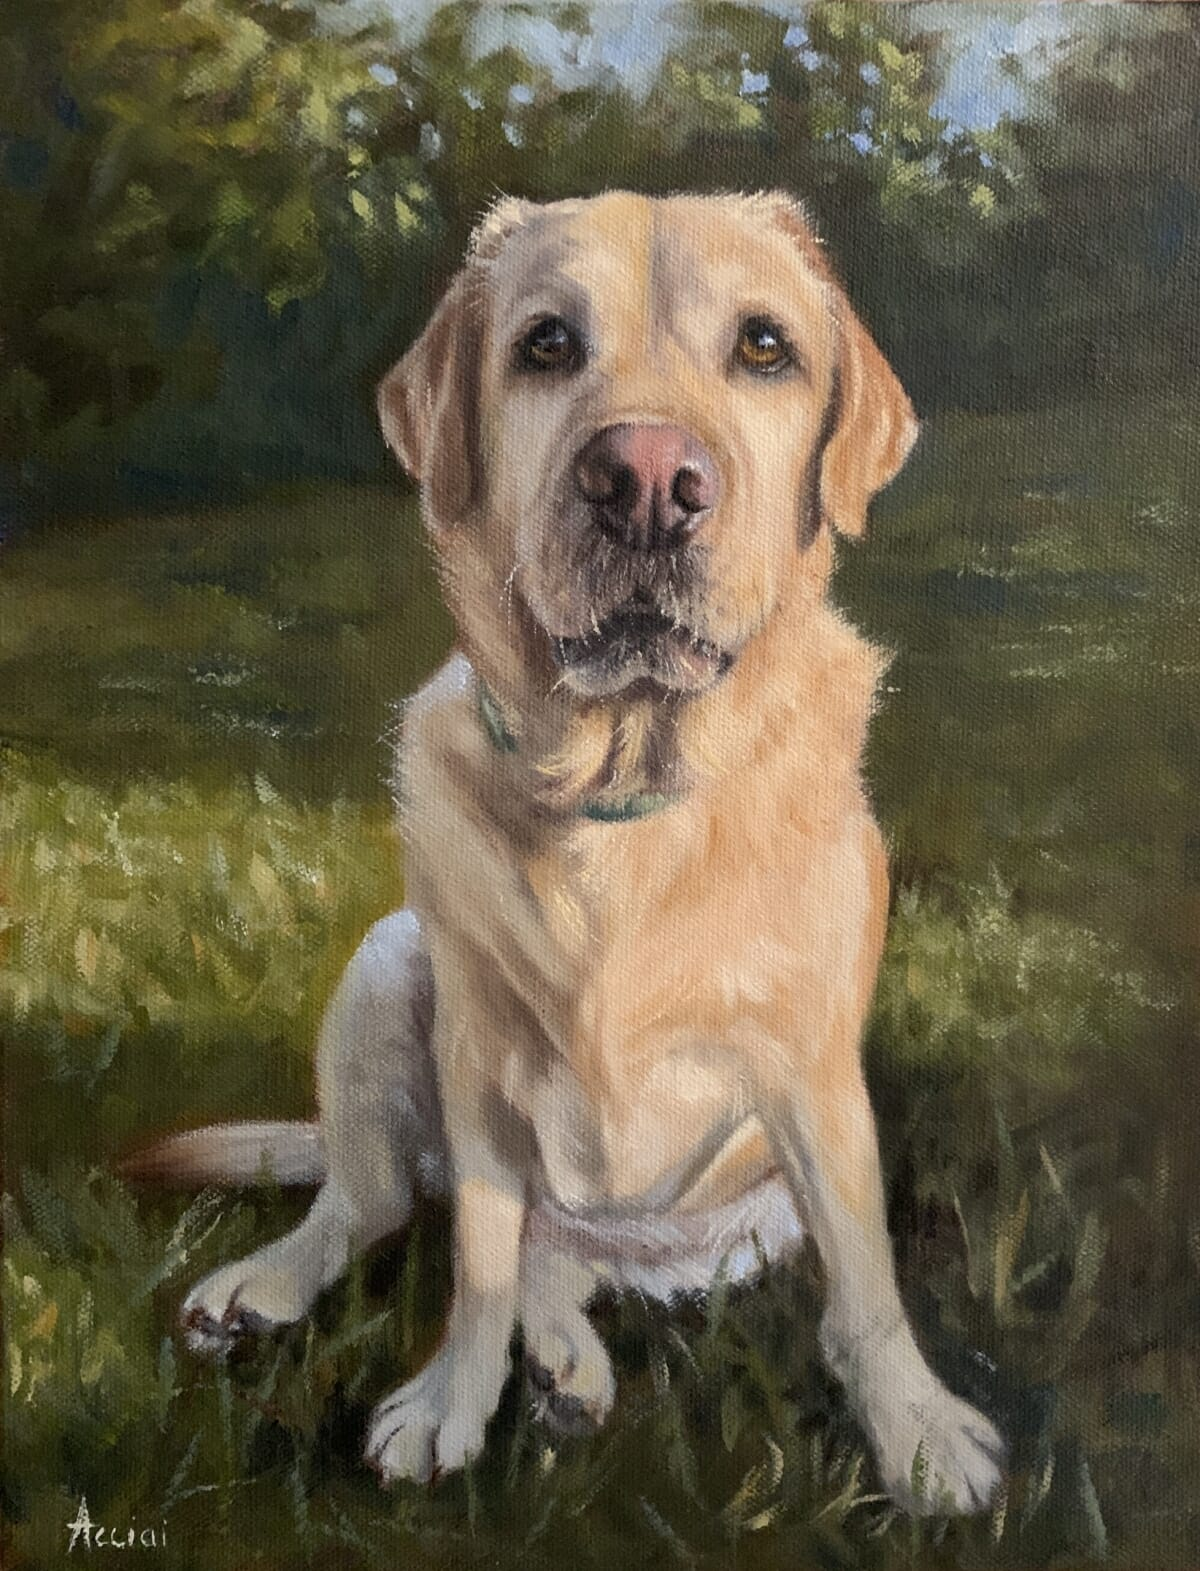 Turk Labrador, oil, Acciai